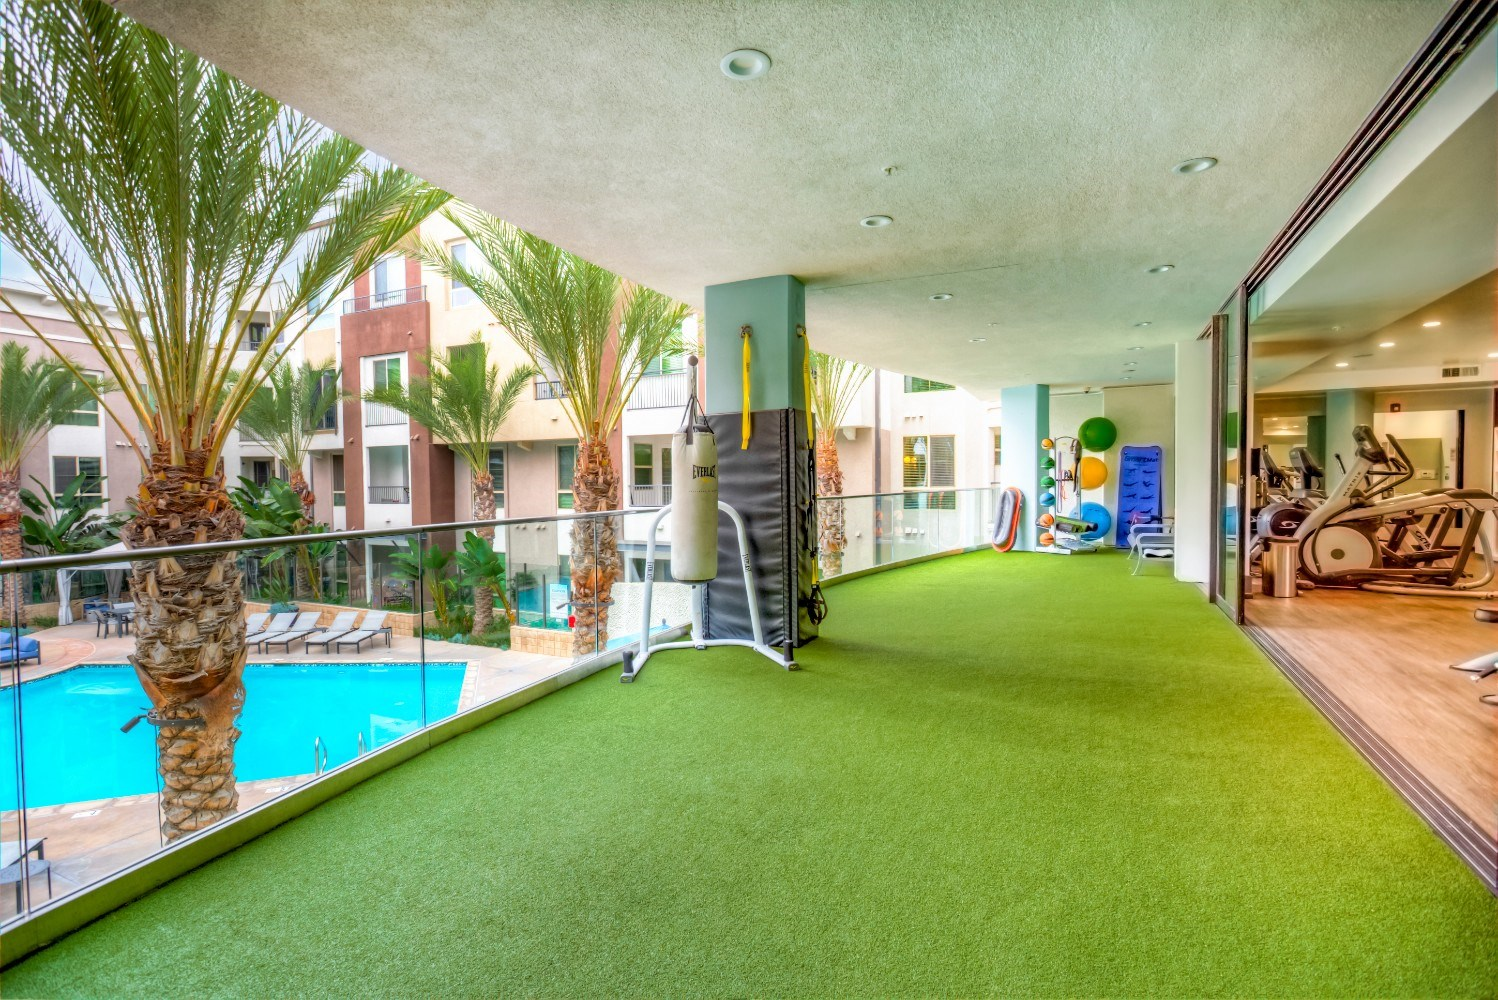 Outdoor fitness area at Accent Apartments, Playa Vista, California